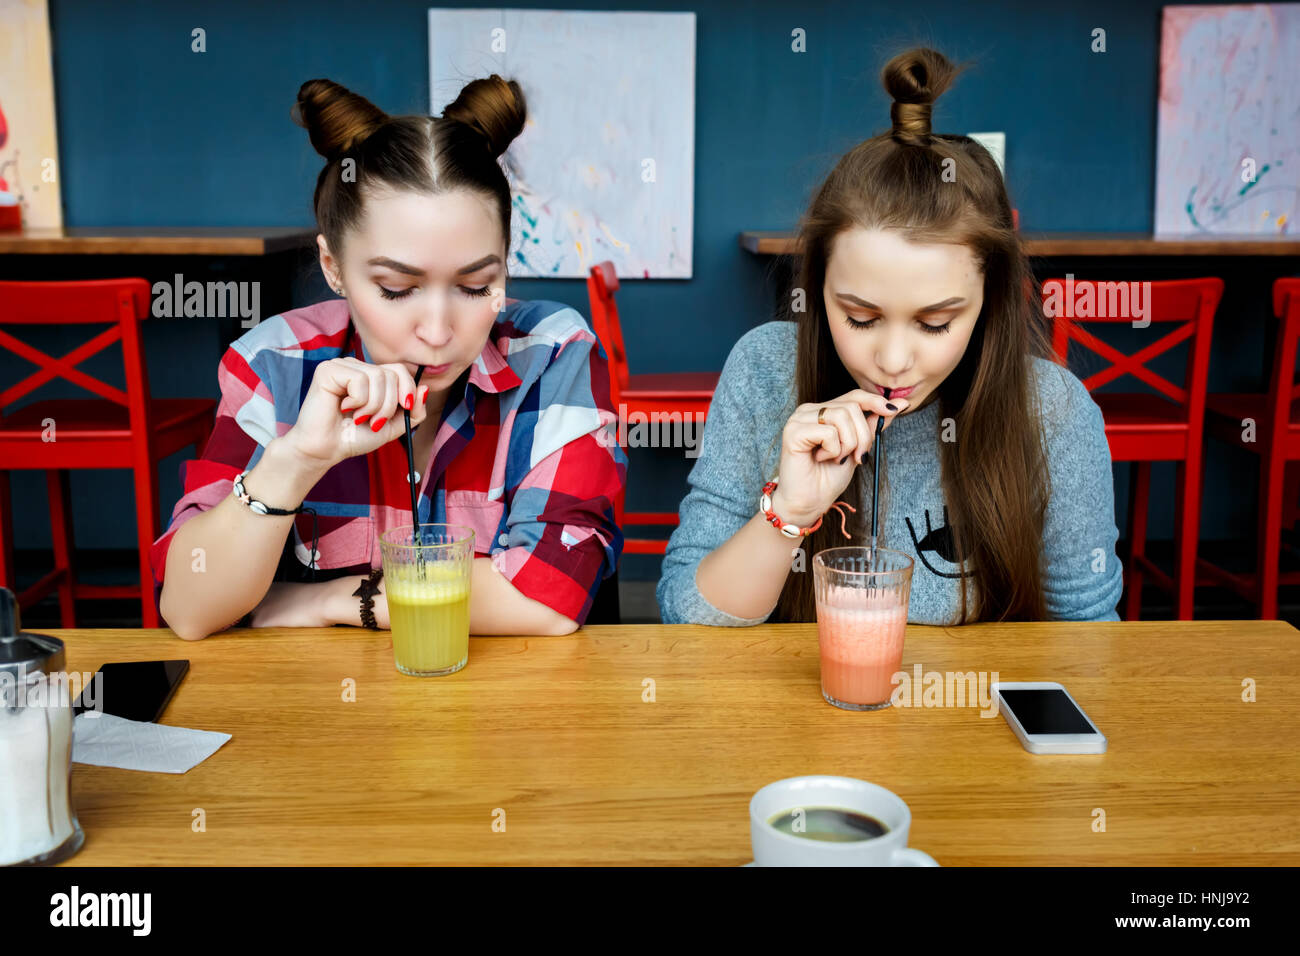 Young girls having fun in a cafe bar. - Stock Image